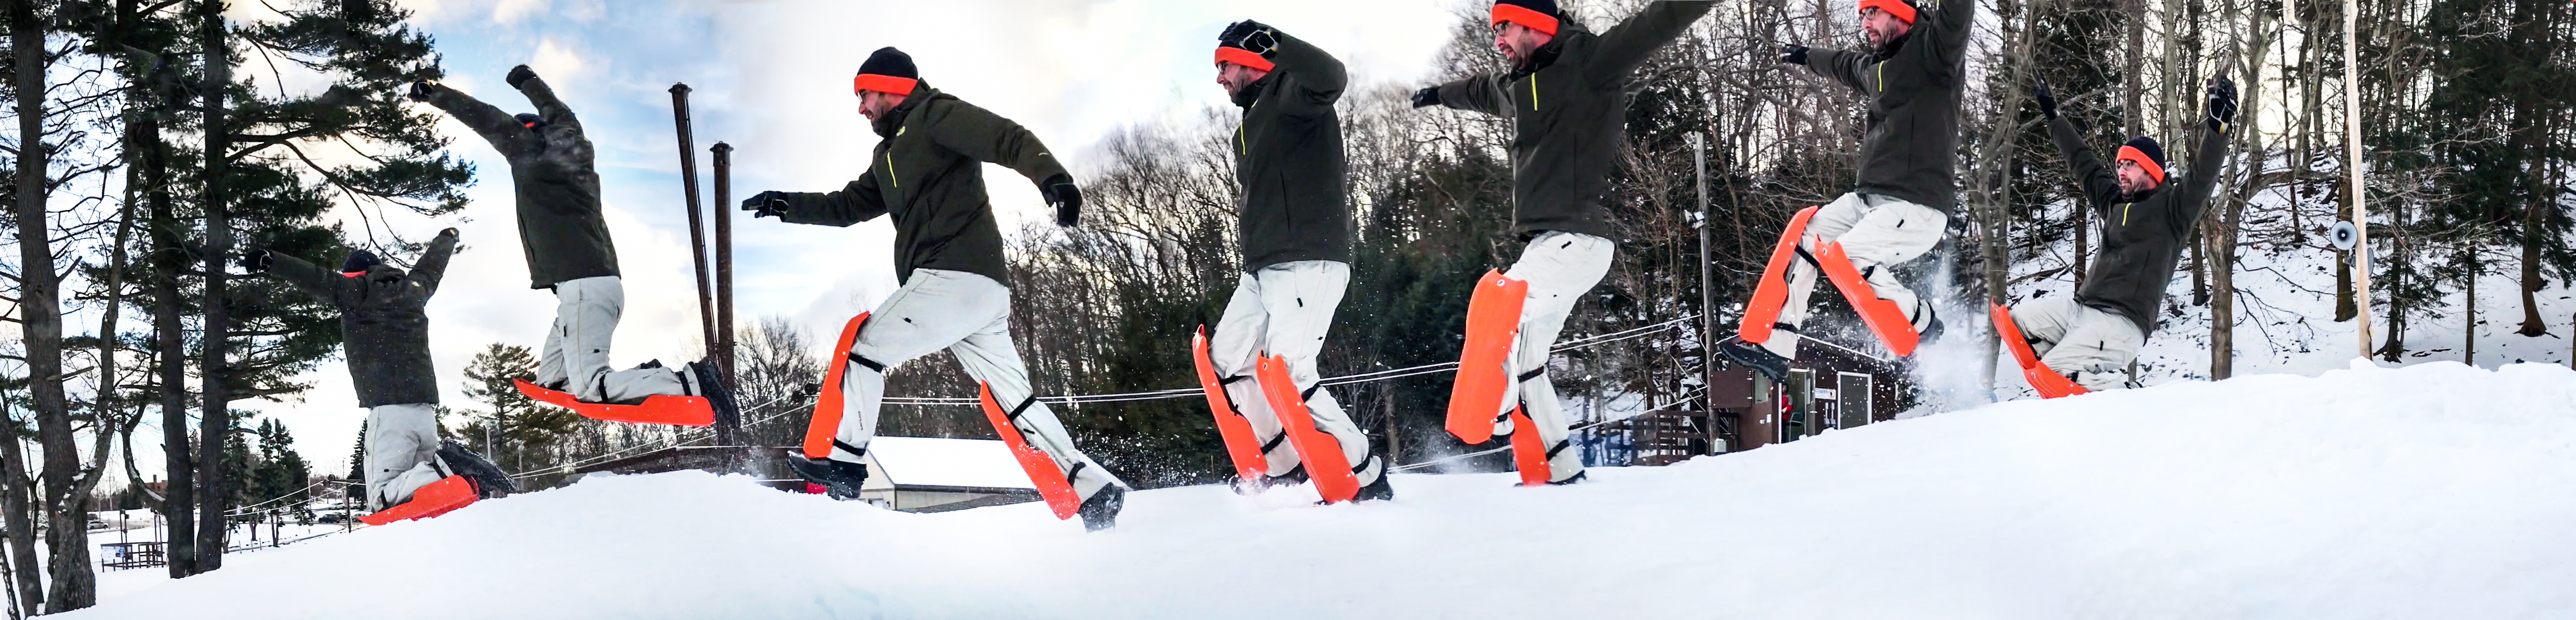 Man wearing skis on his knees leaps into winter fun